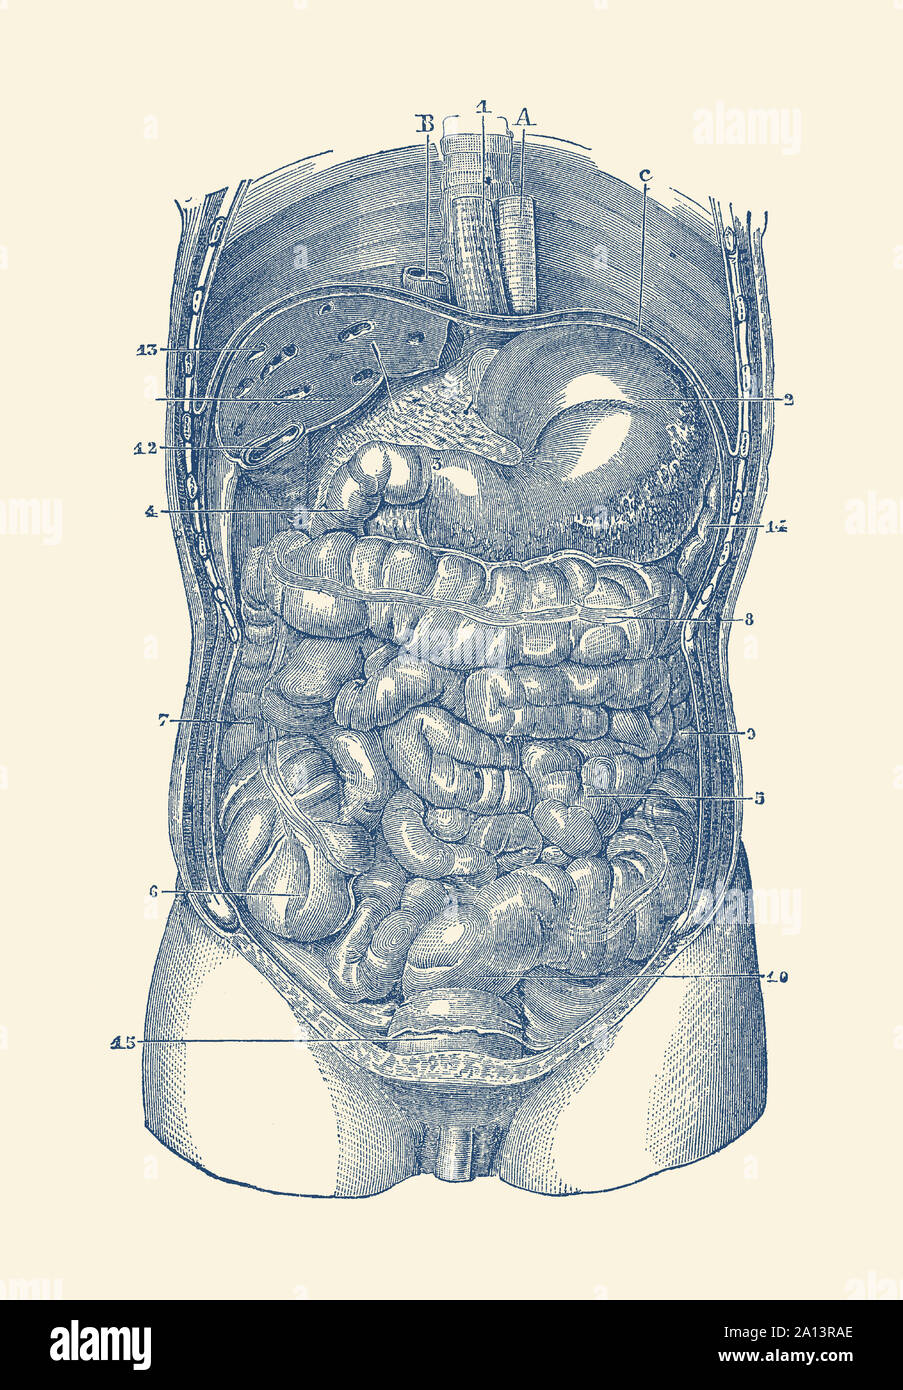 Digestive System Drawing Stock Photos Digestive System